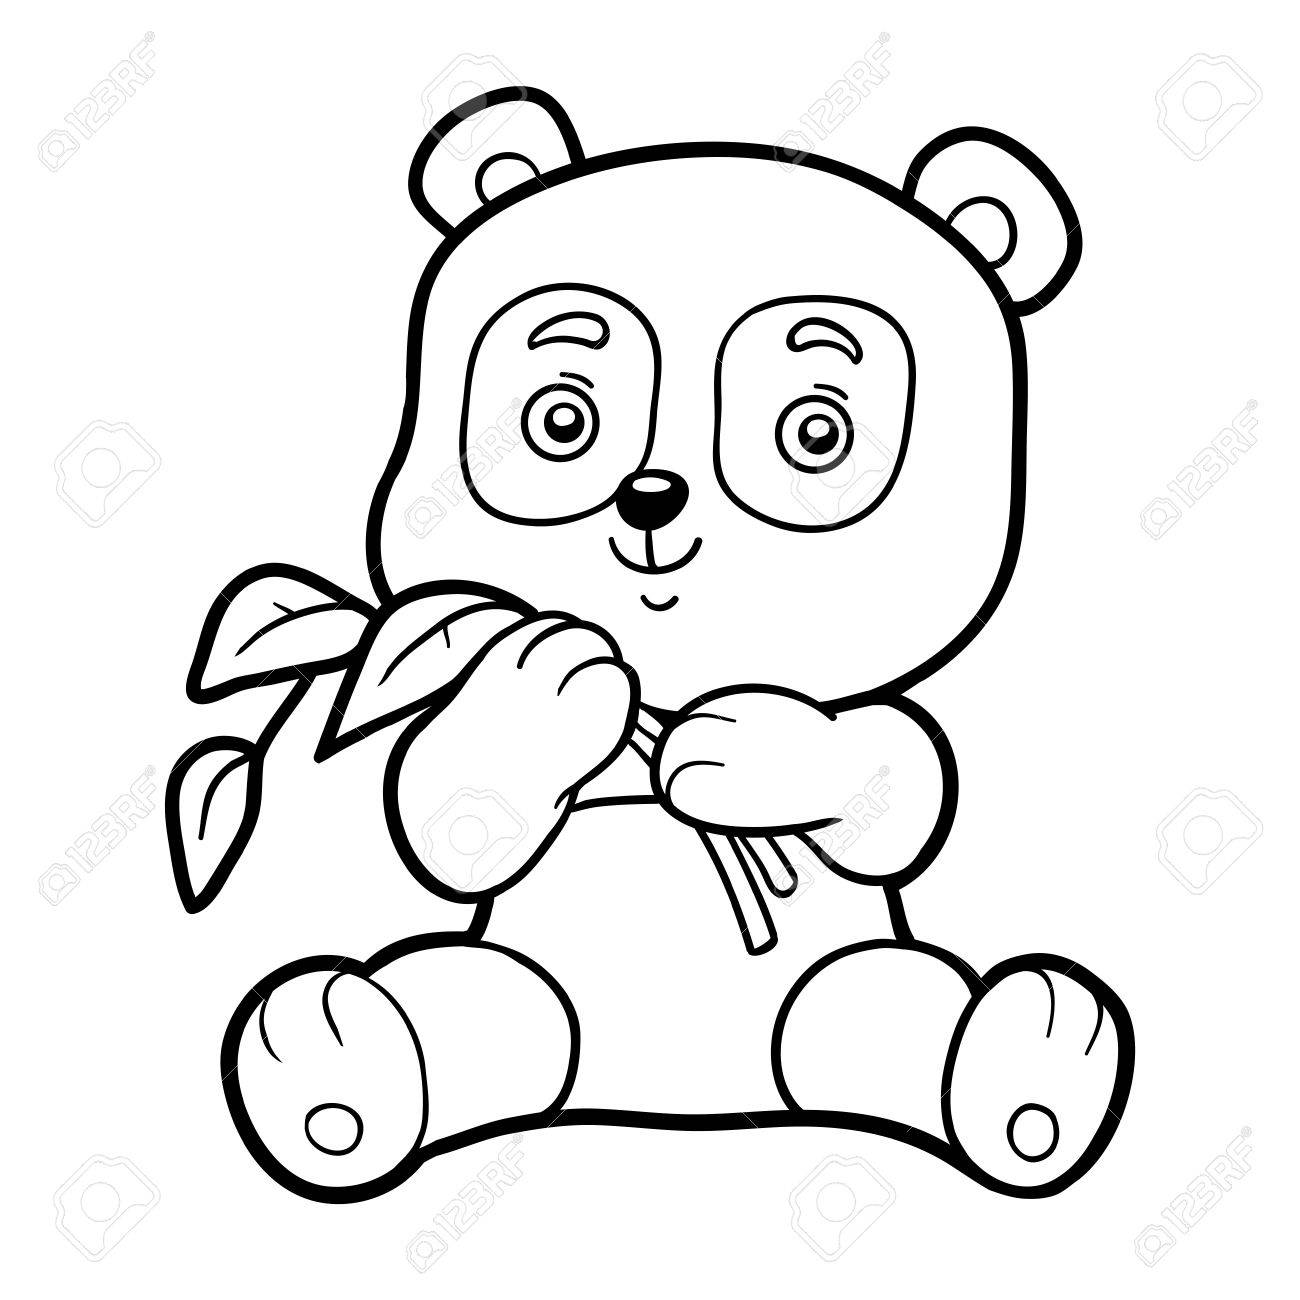 Coloring Book For Children Page With Little Panda Stock Vector